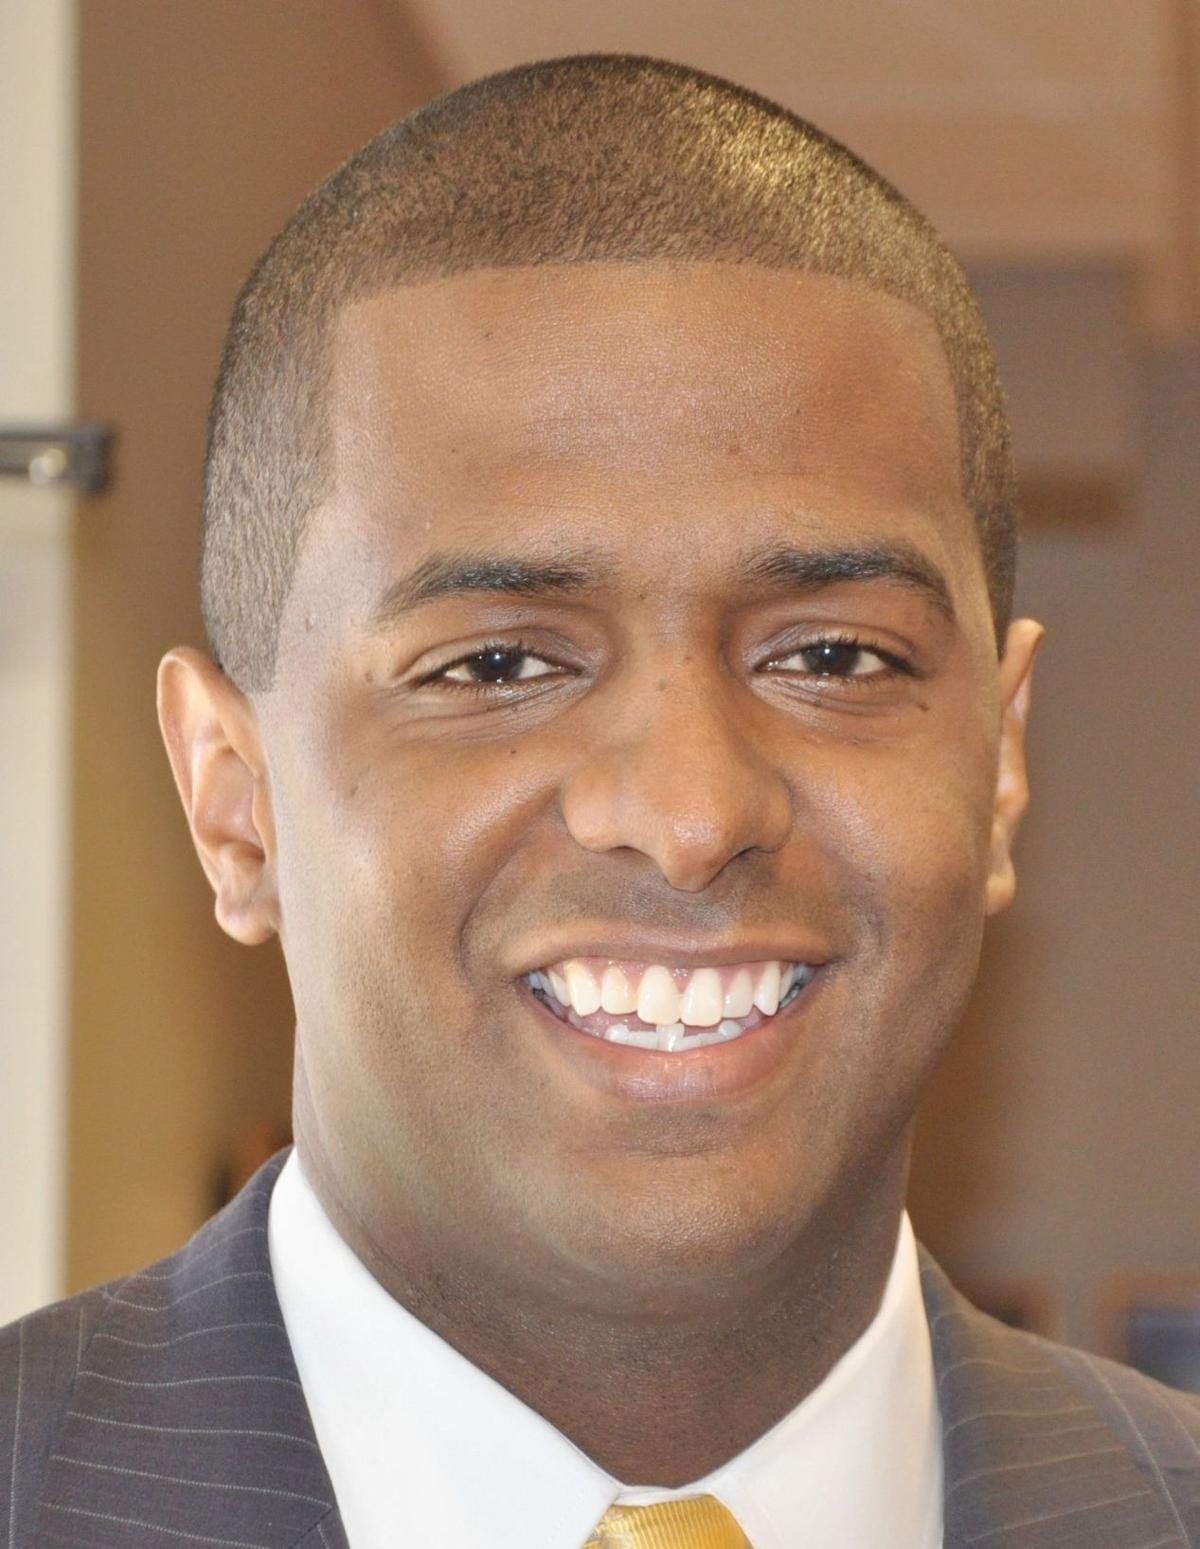 Former S.C. Rep. Bakari Sellers joins 'Ready for Hillary' council